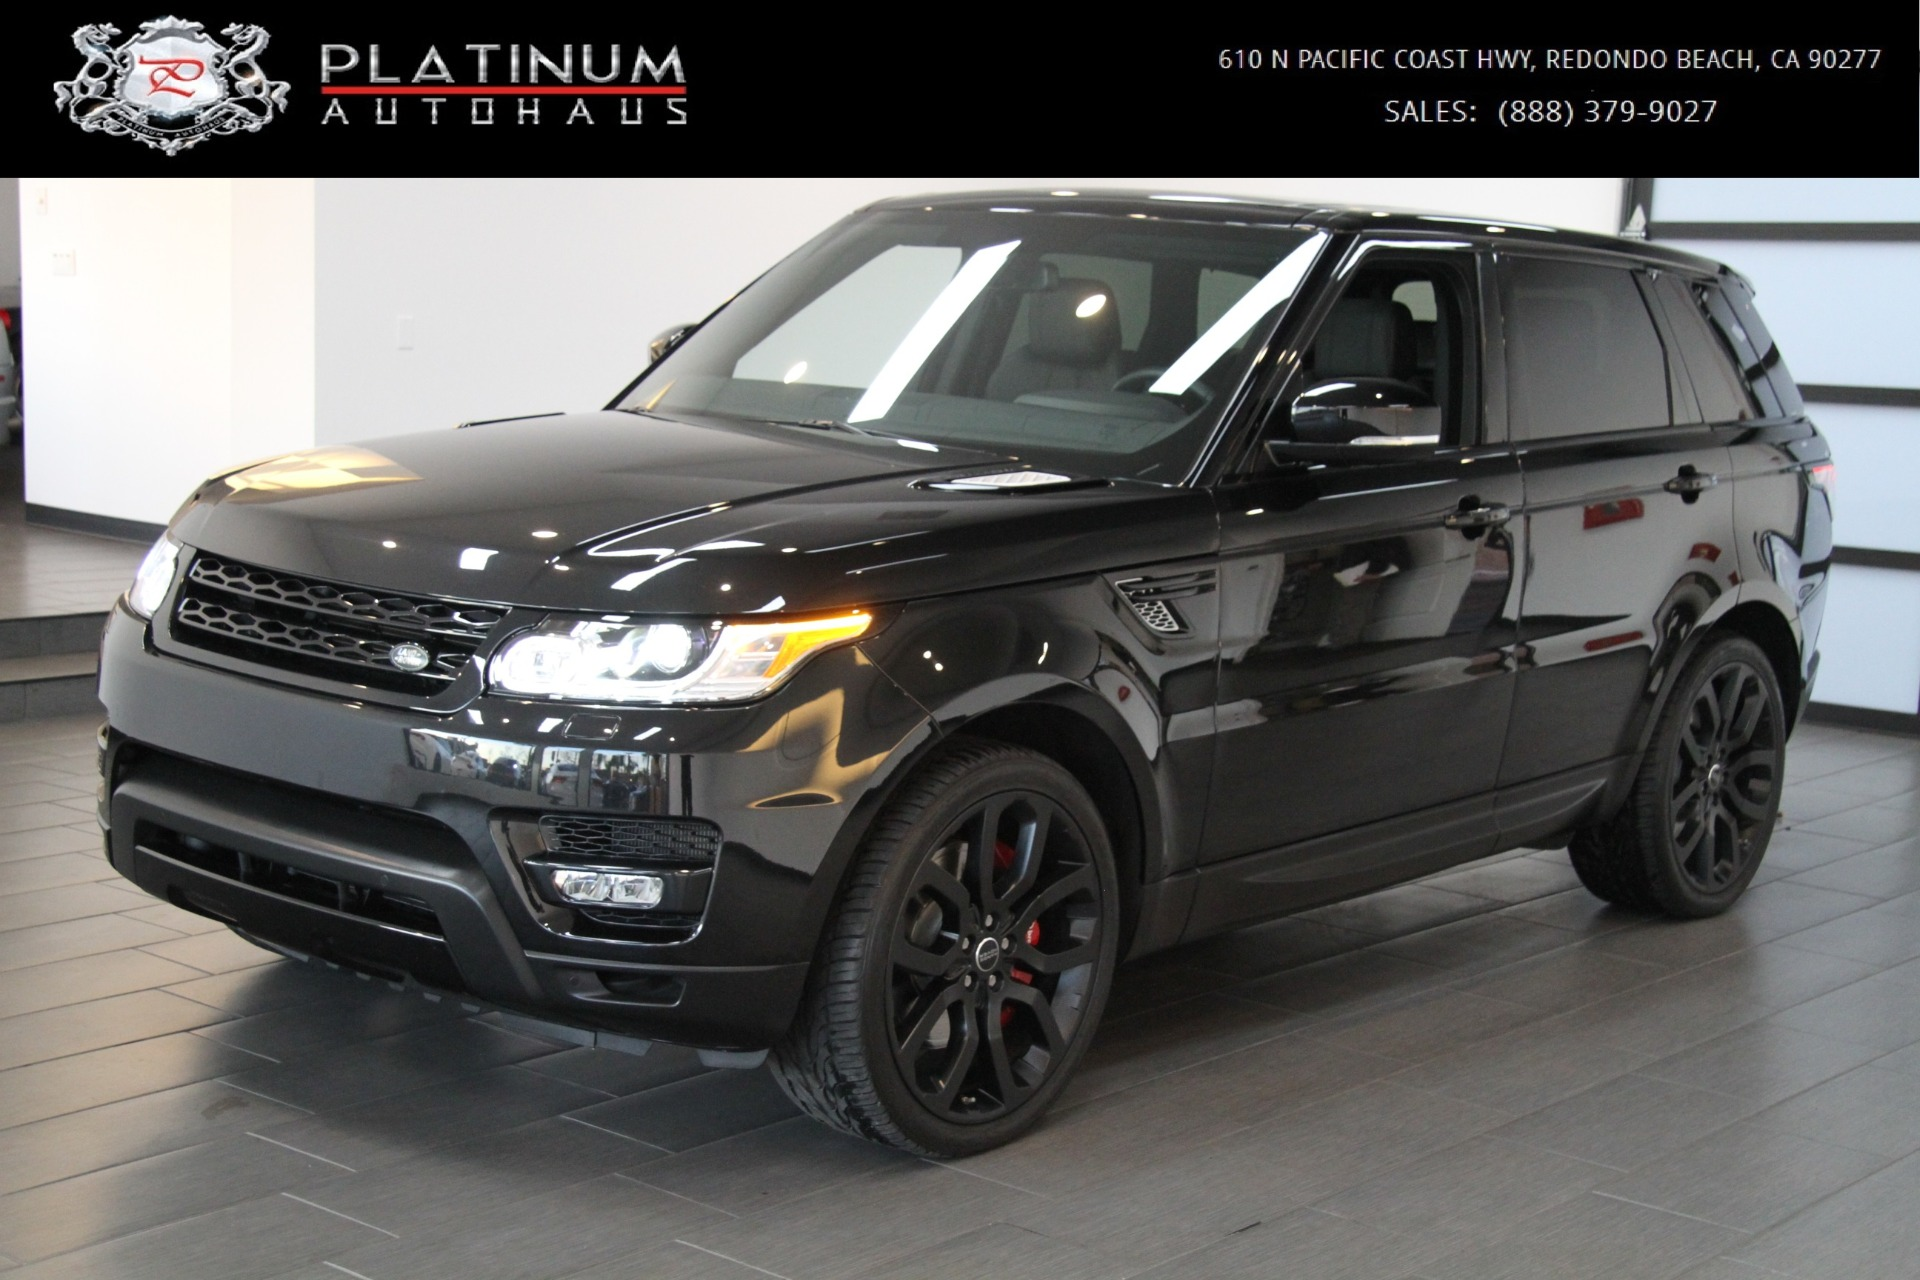 2014 land rover range rover sport supercharged stock 6114 for sale near redondo beach ca ca - Land rover garage near me ...